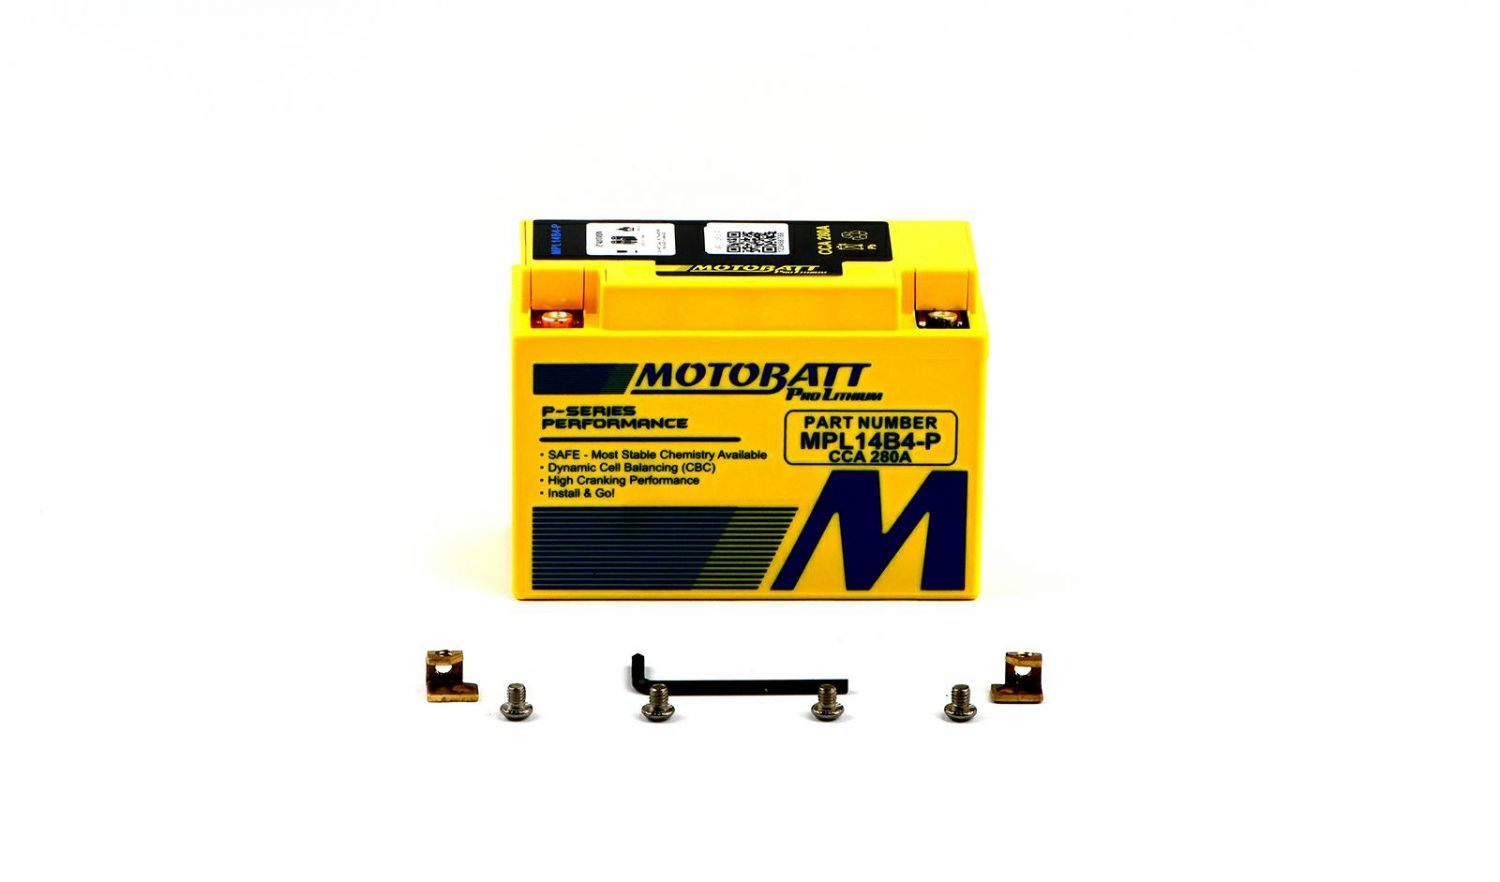 Motobatt Lithium Batteries - 501146ML image